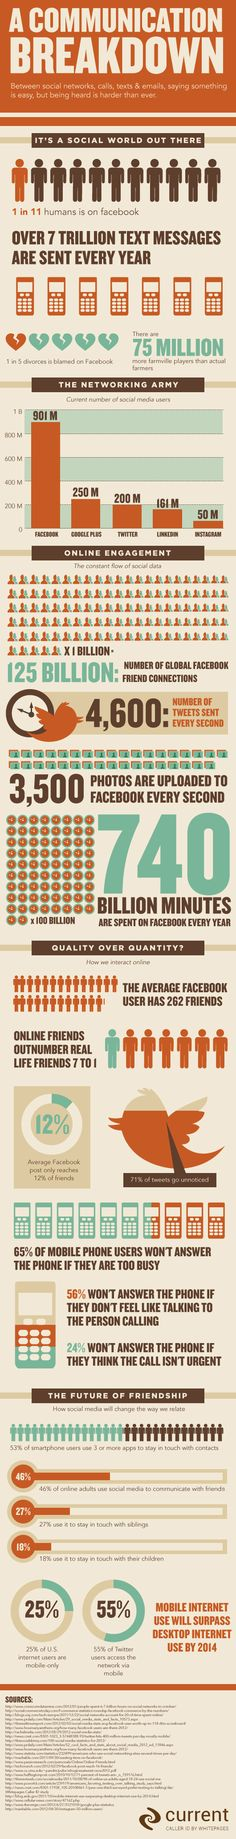 Is Social Media Leading To A Communication Breakdown? [INFOGRAPHIC]